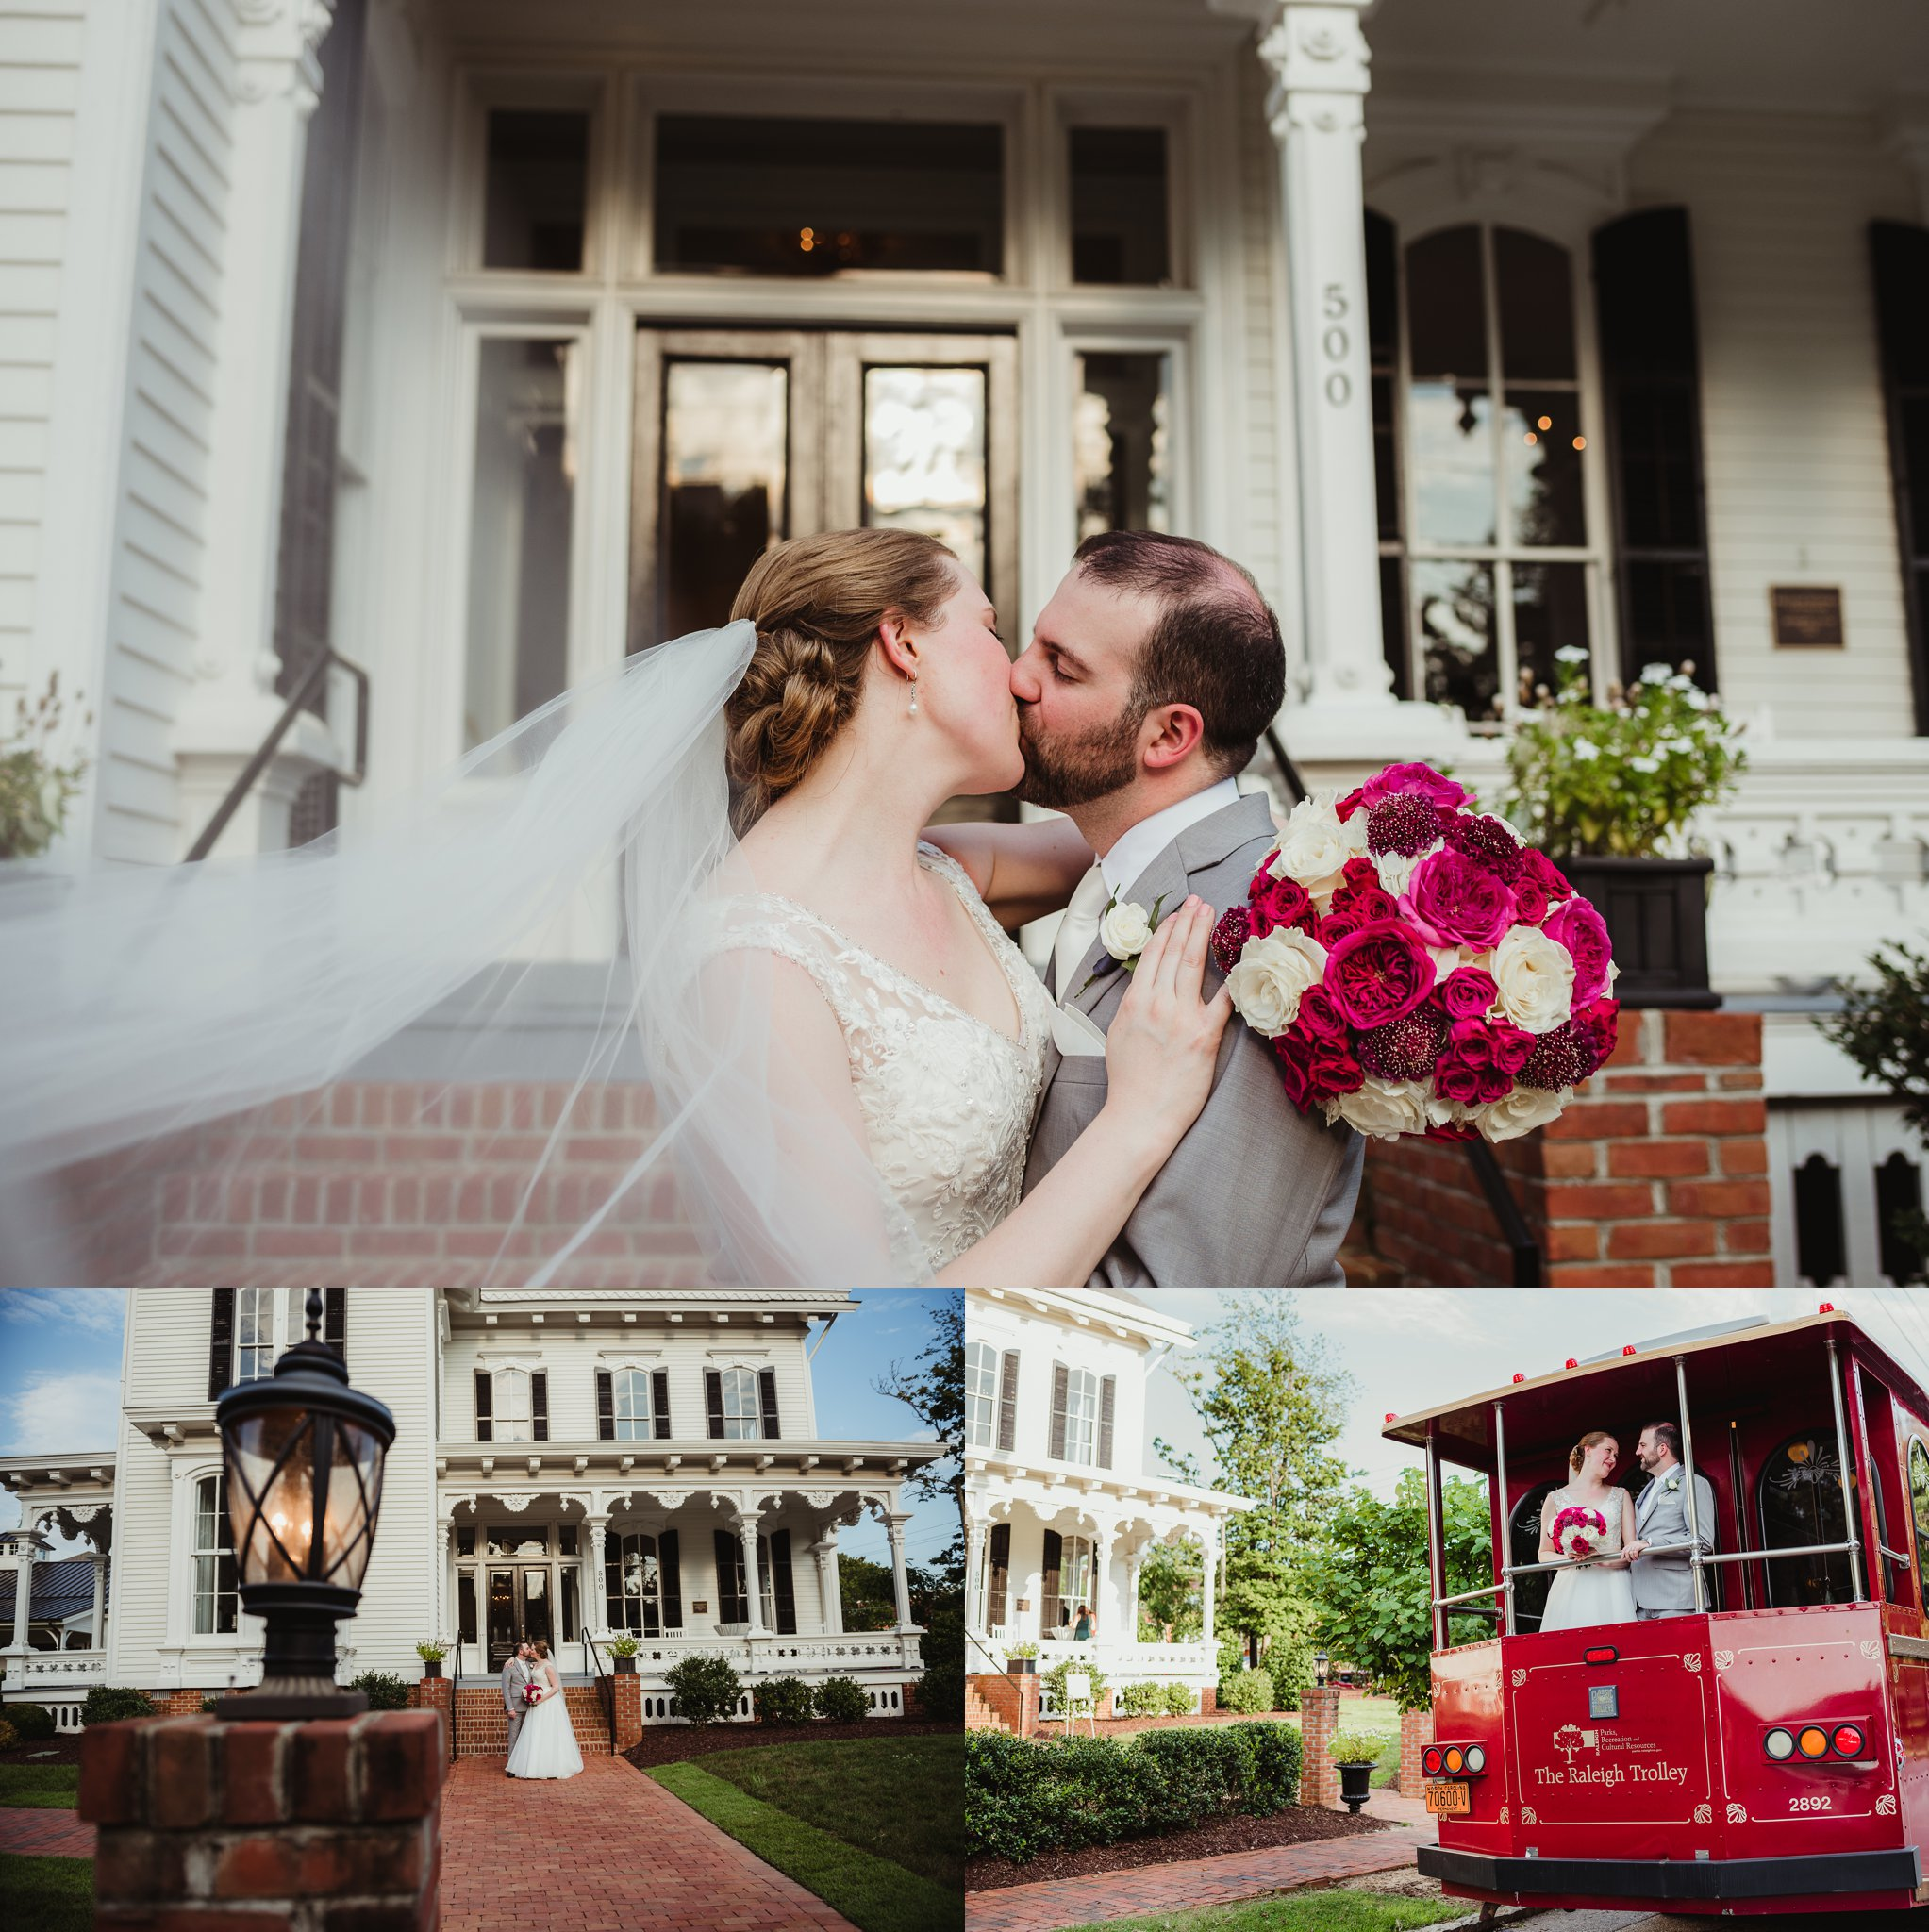 The bride and groom pose for portraits after their wedding ceremony at the Merrimon Wynne in Raleigh, photos by Rose Trail Images.